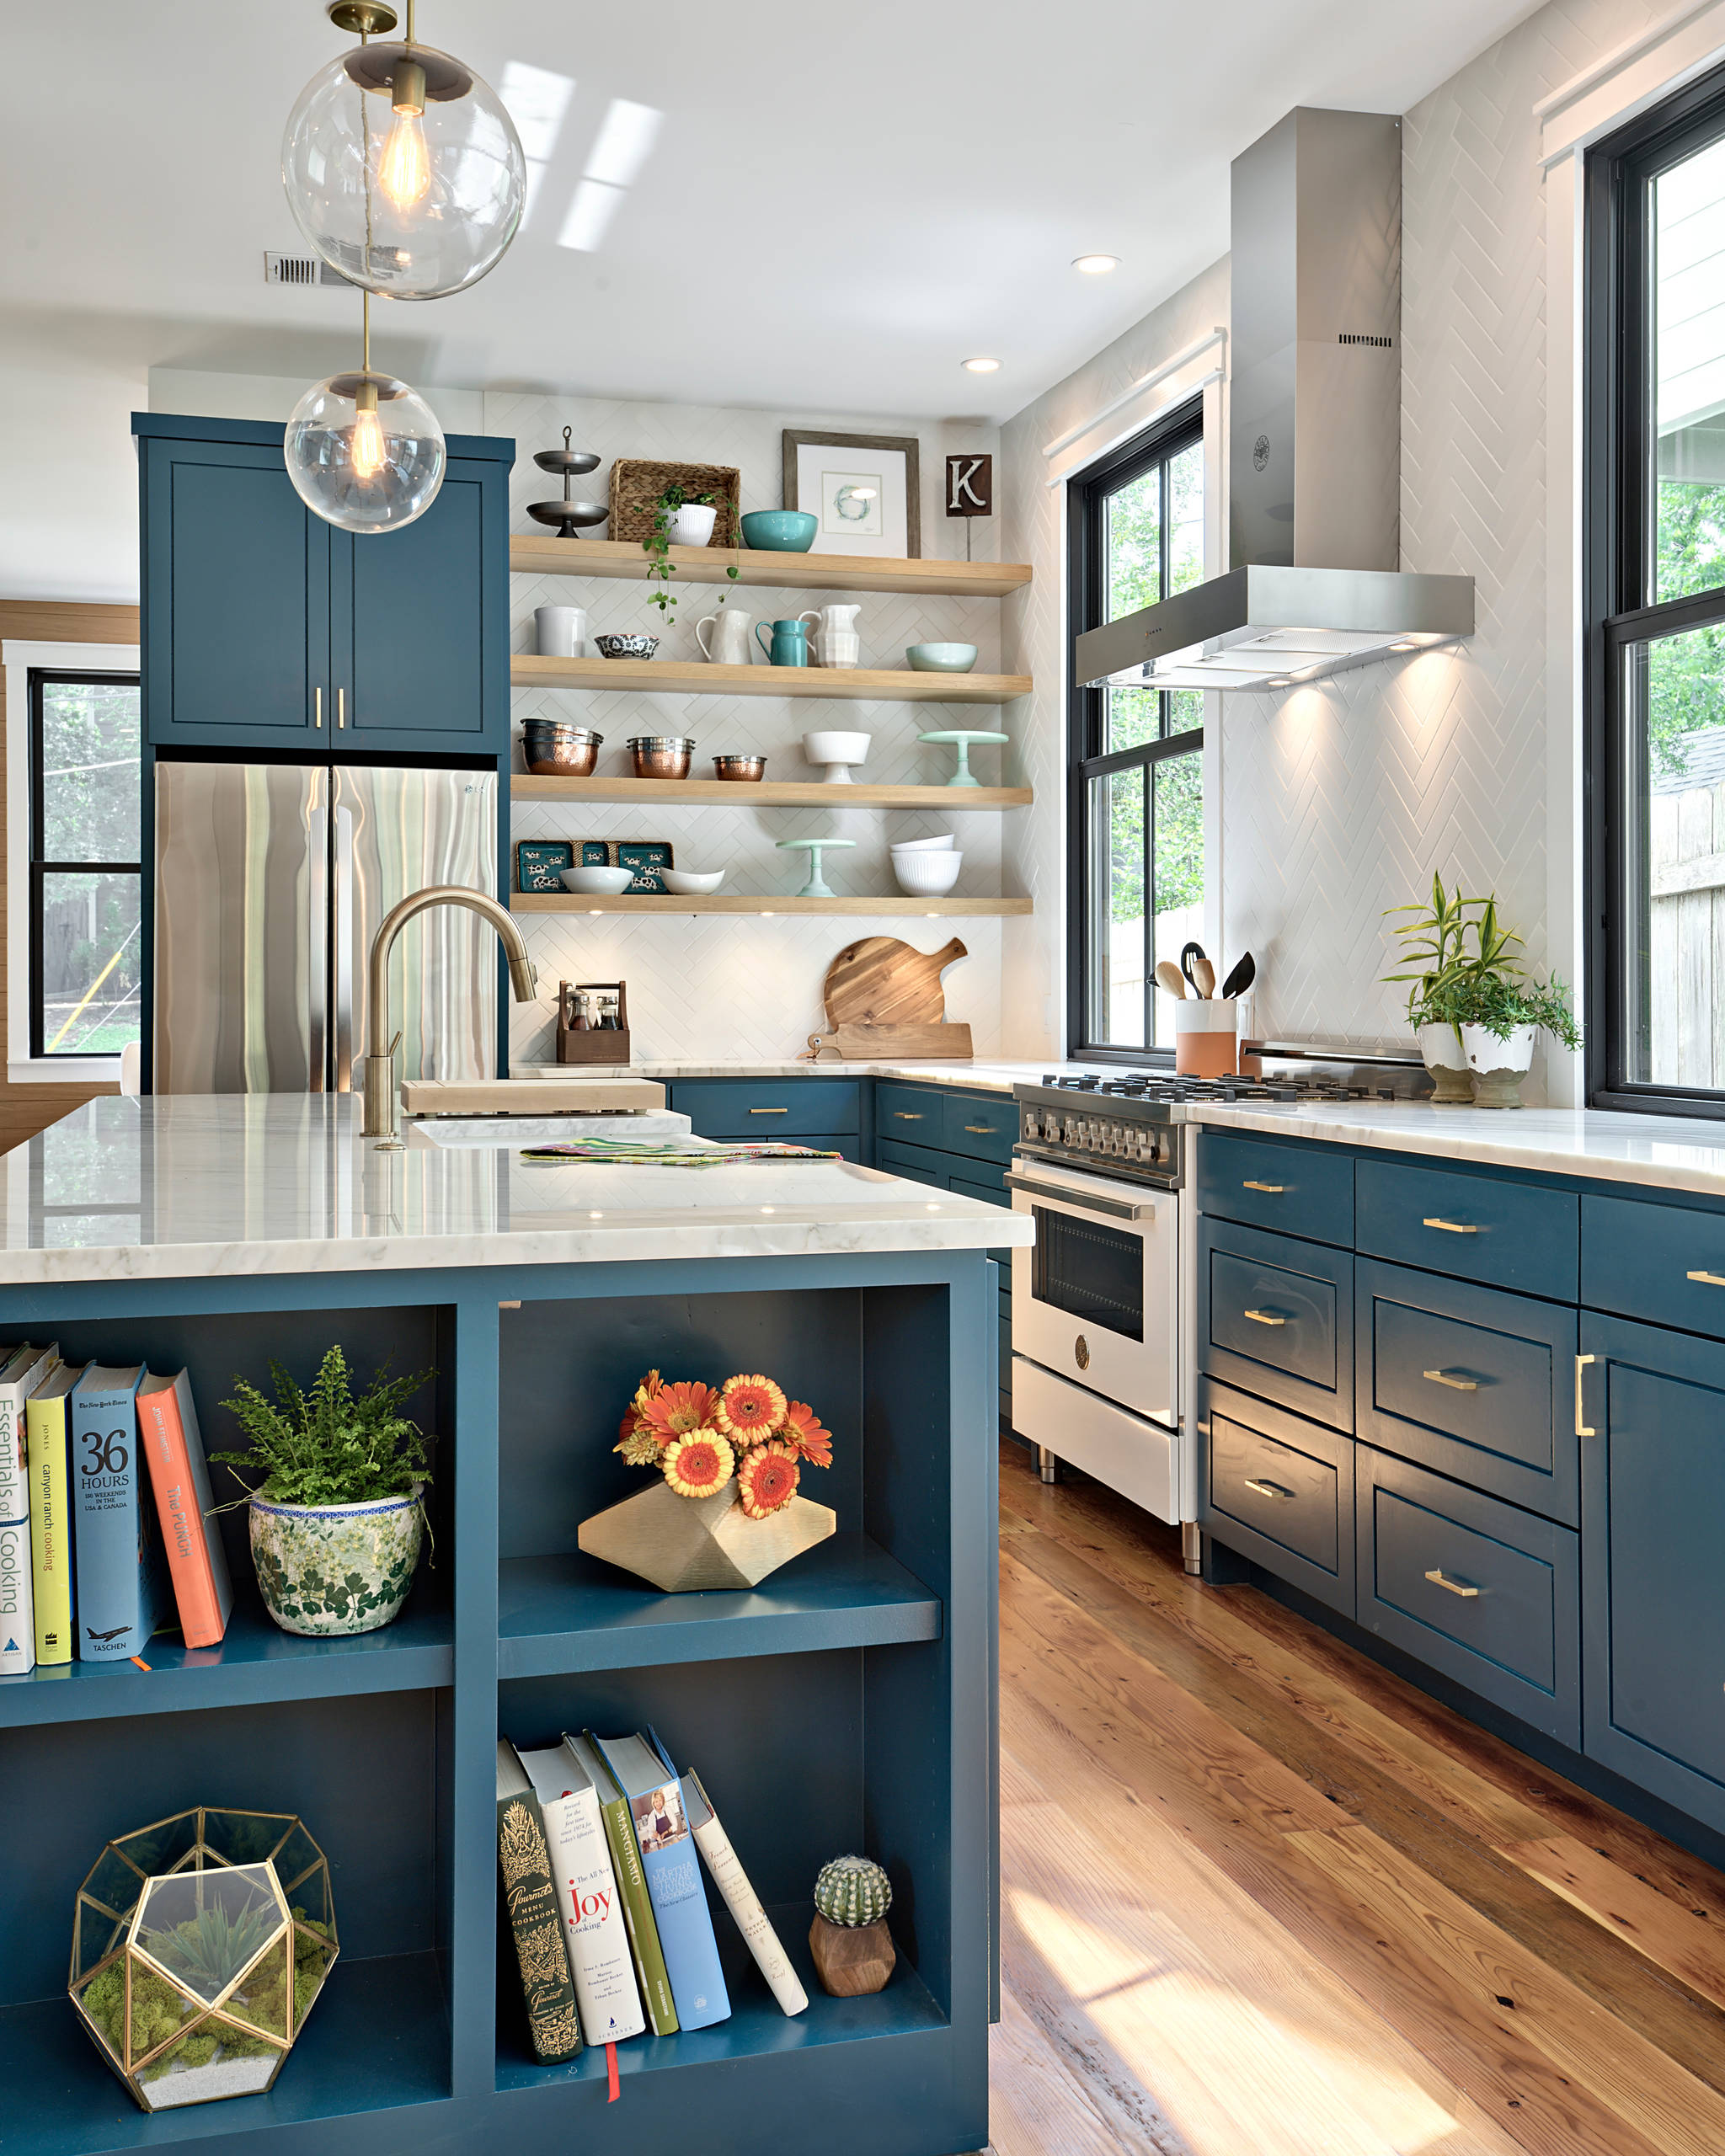 75 Beautiful Kitchen With White Appliances Pictures Ideas December 2020 Houzz